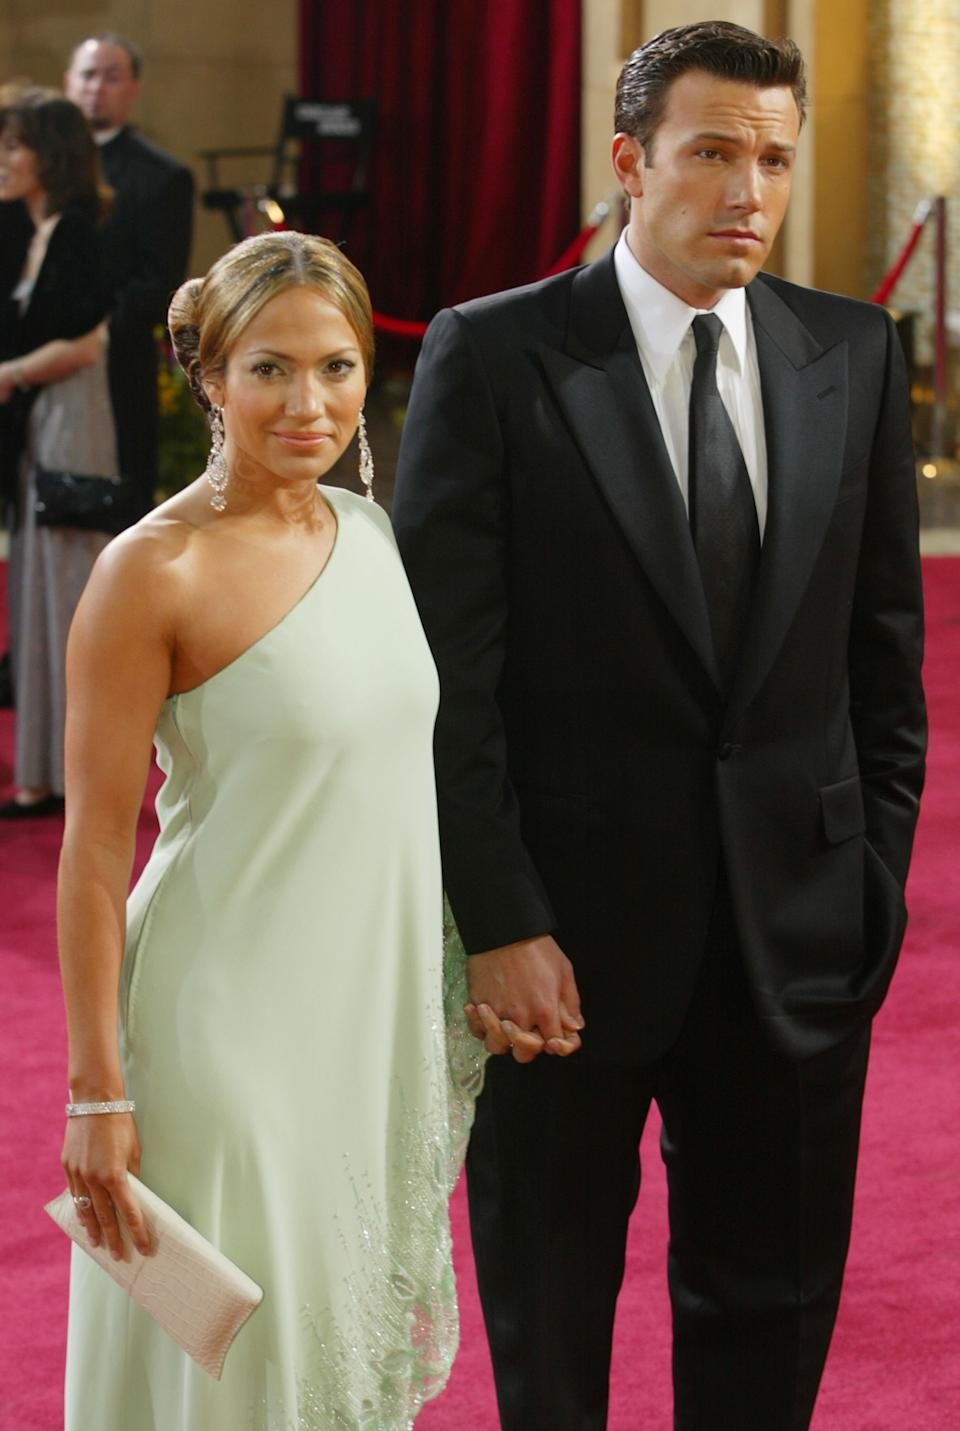 HOLLYWOOD - MARCH 23:  Actress Jennifer Lopez, wearing Harry Winston jewelry, and actor Ben Affleck attend the 75th Annual Academy Awards at the Kodak Theater on March 23, 2003 in Hollywood, California.  (Photo by Kevin Winter/Getty Images)